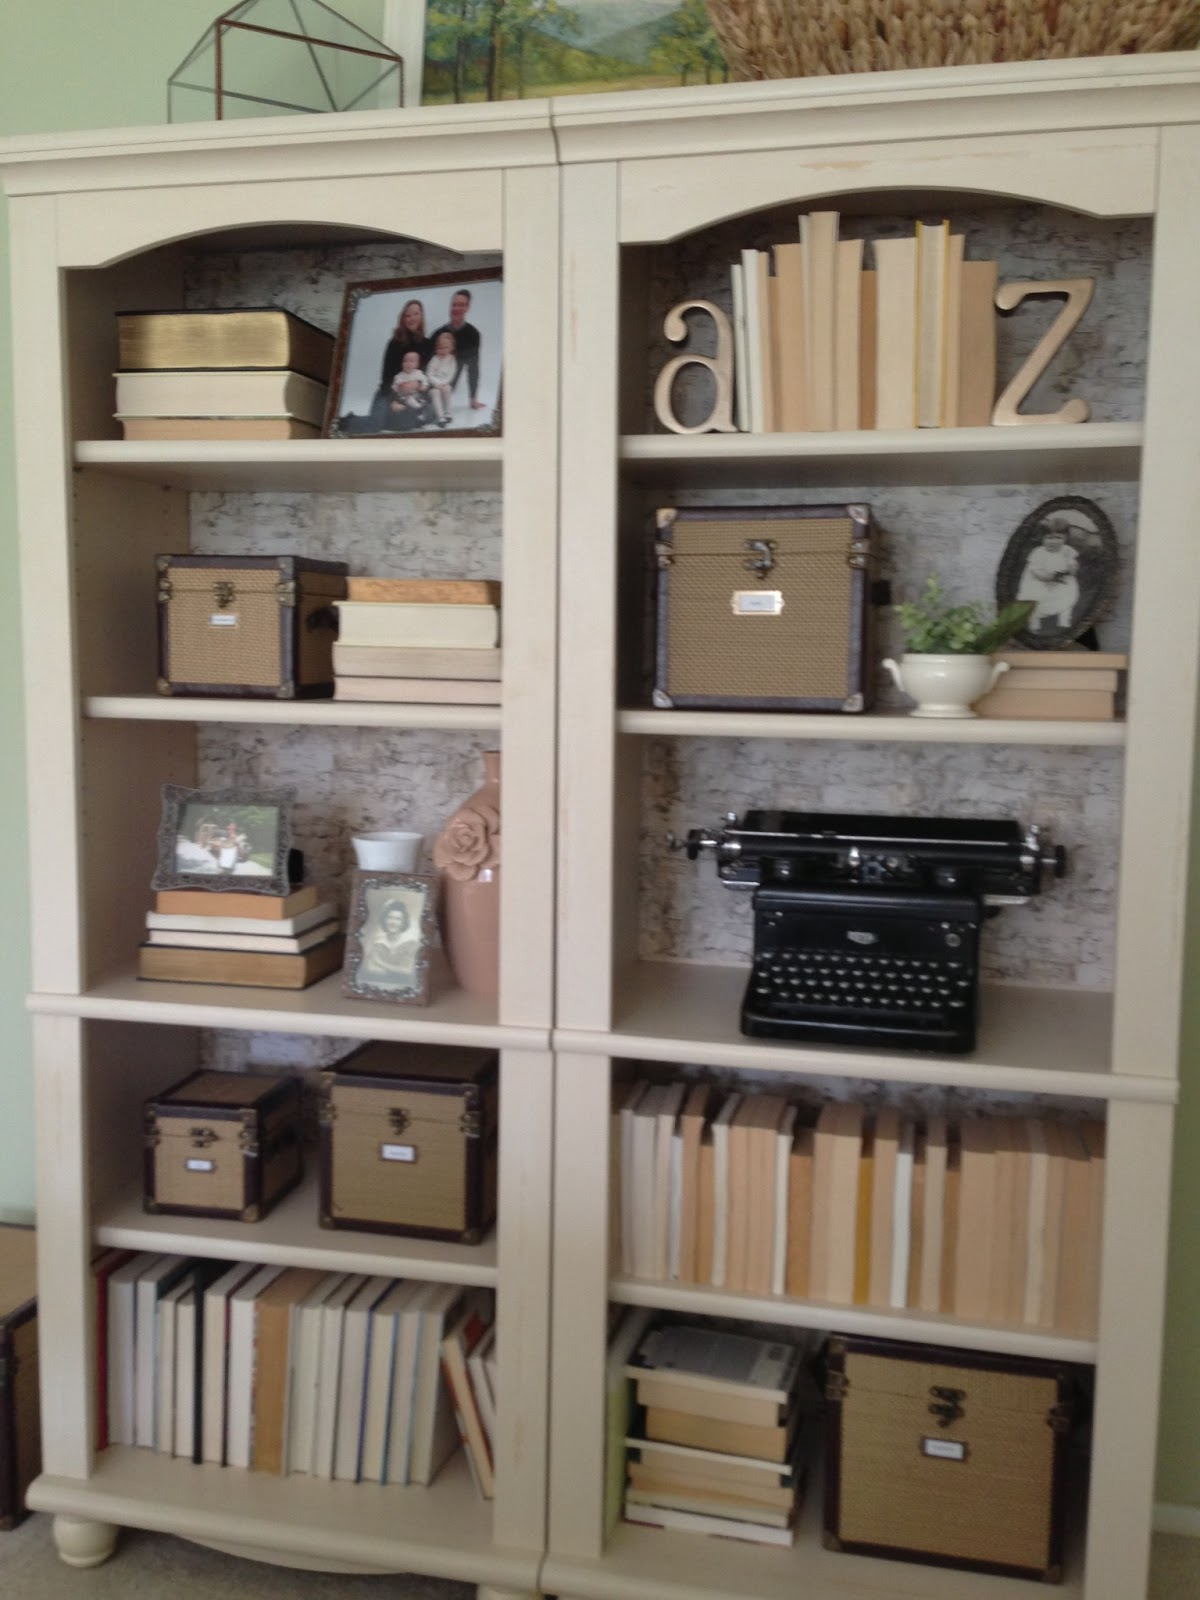 Home Made Modern: Restyled Bookcases Using Wrapping Paper